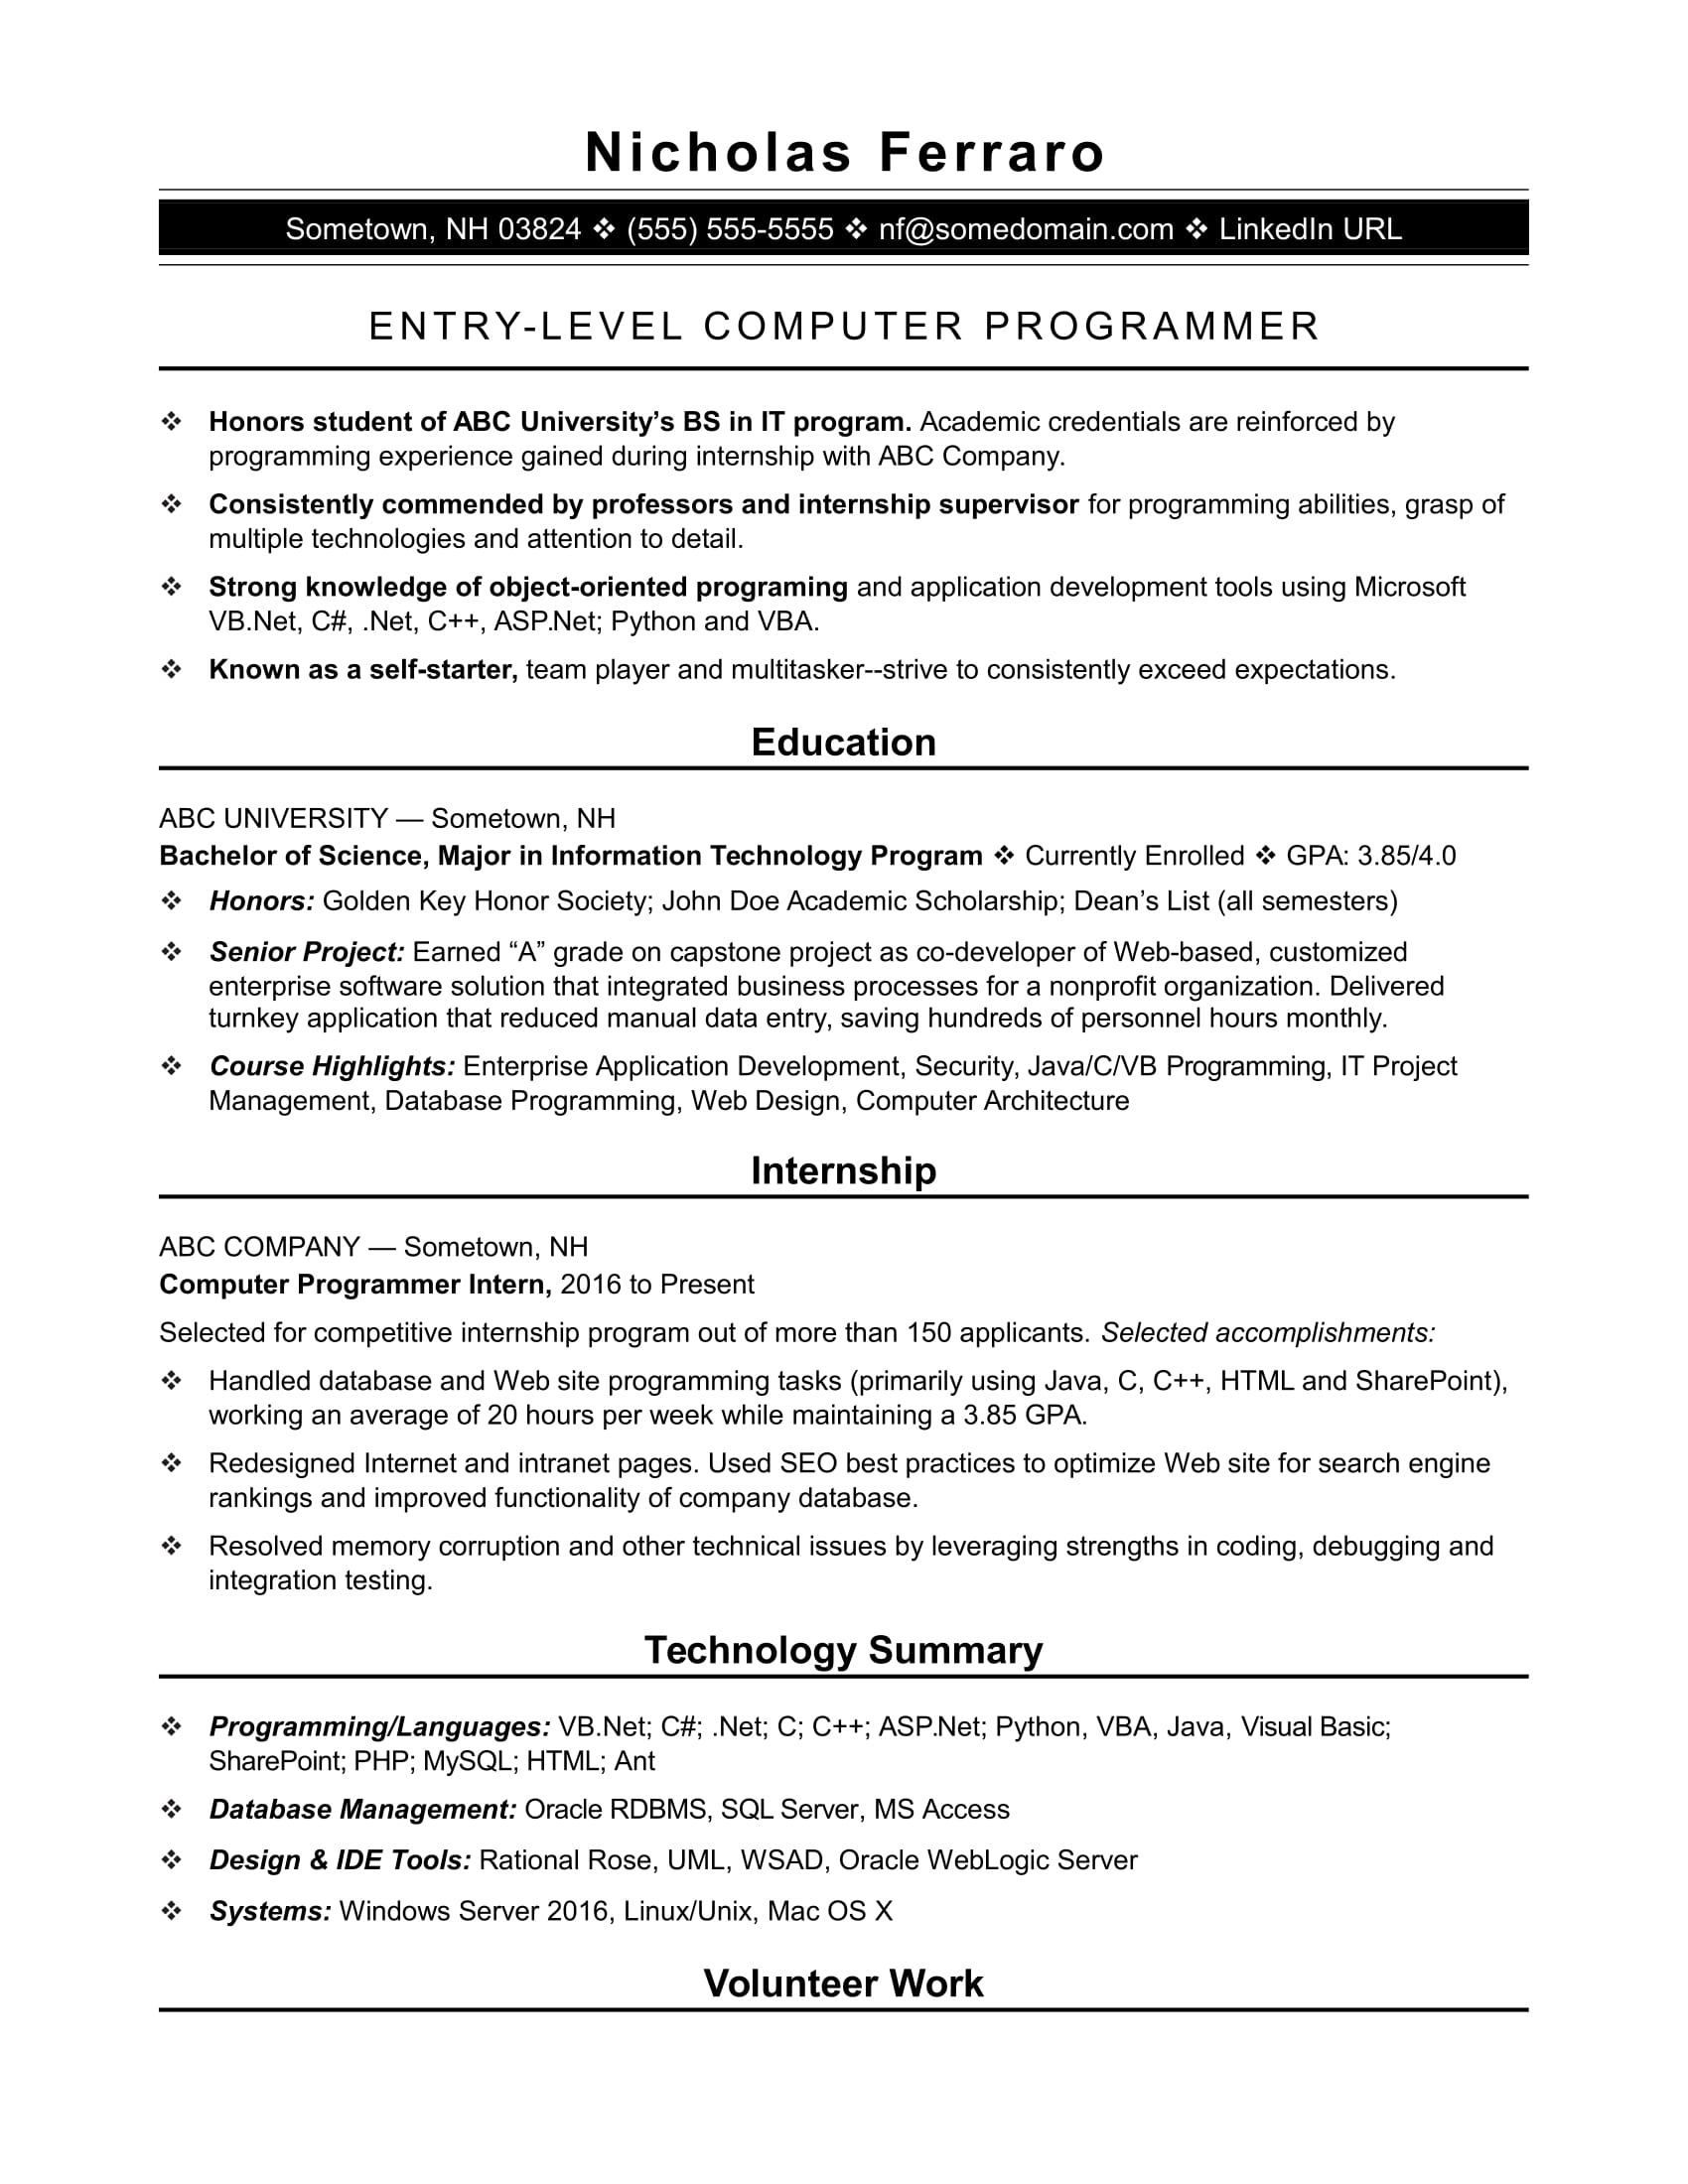 Sample Resume For An Entry Level puter Programmer